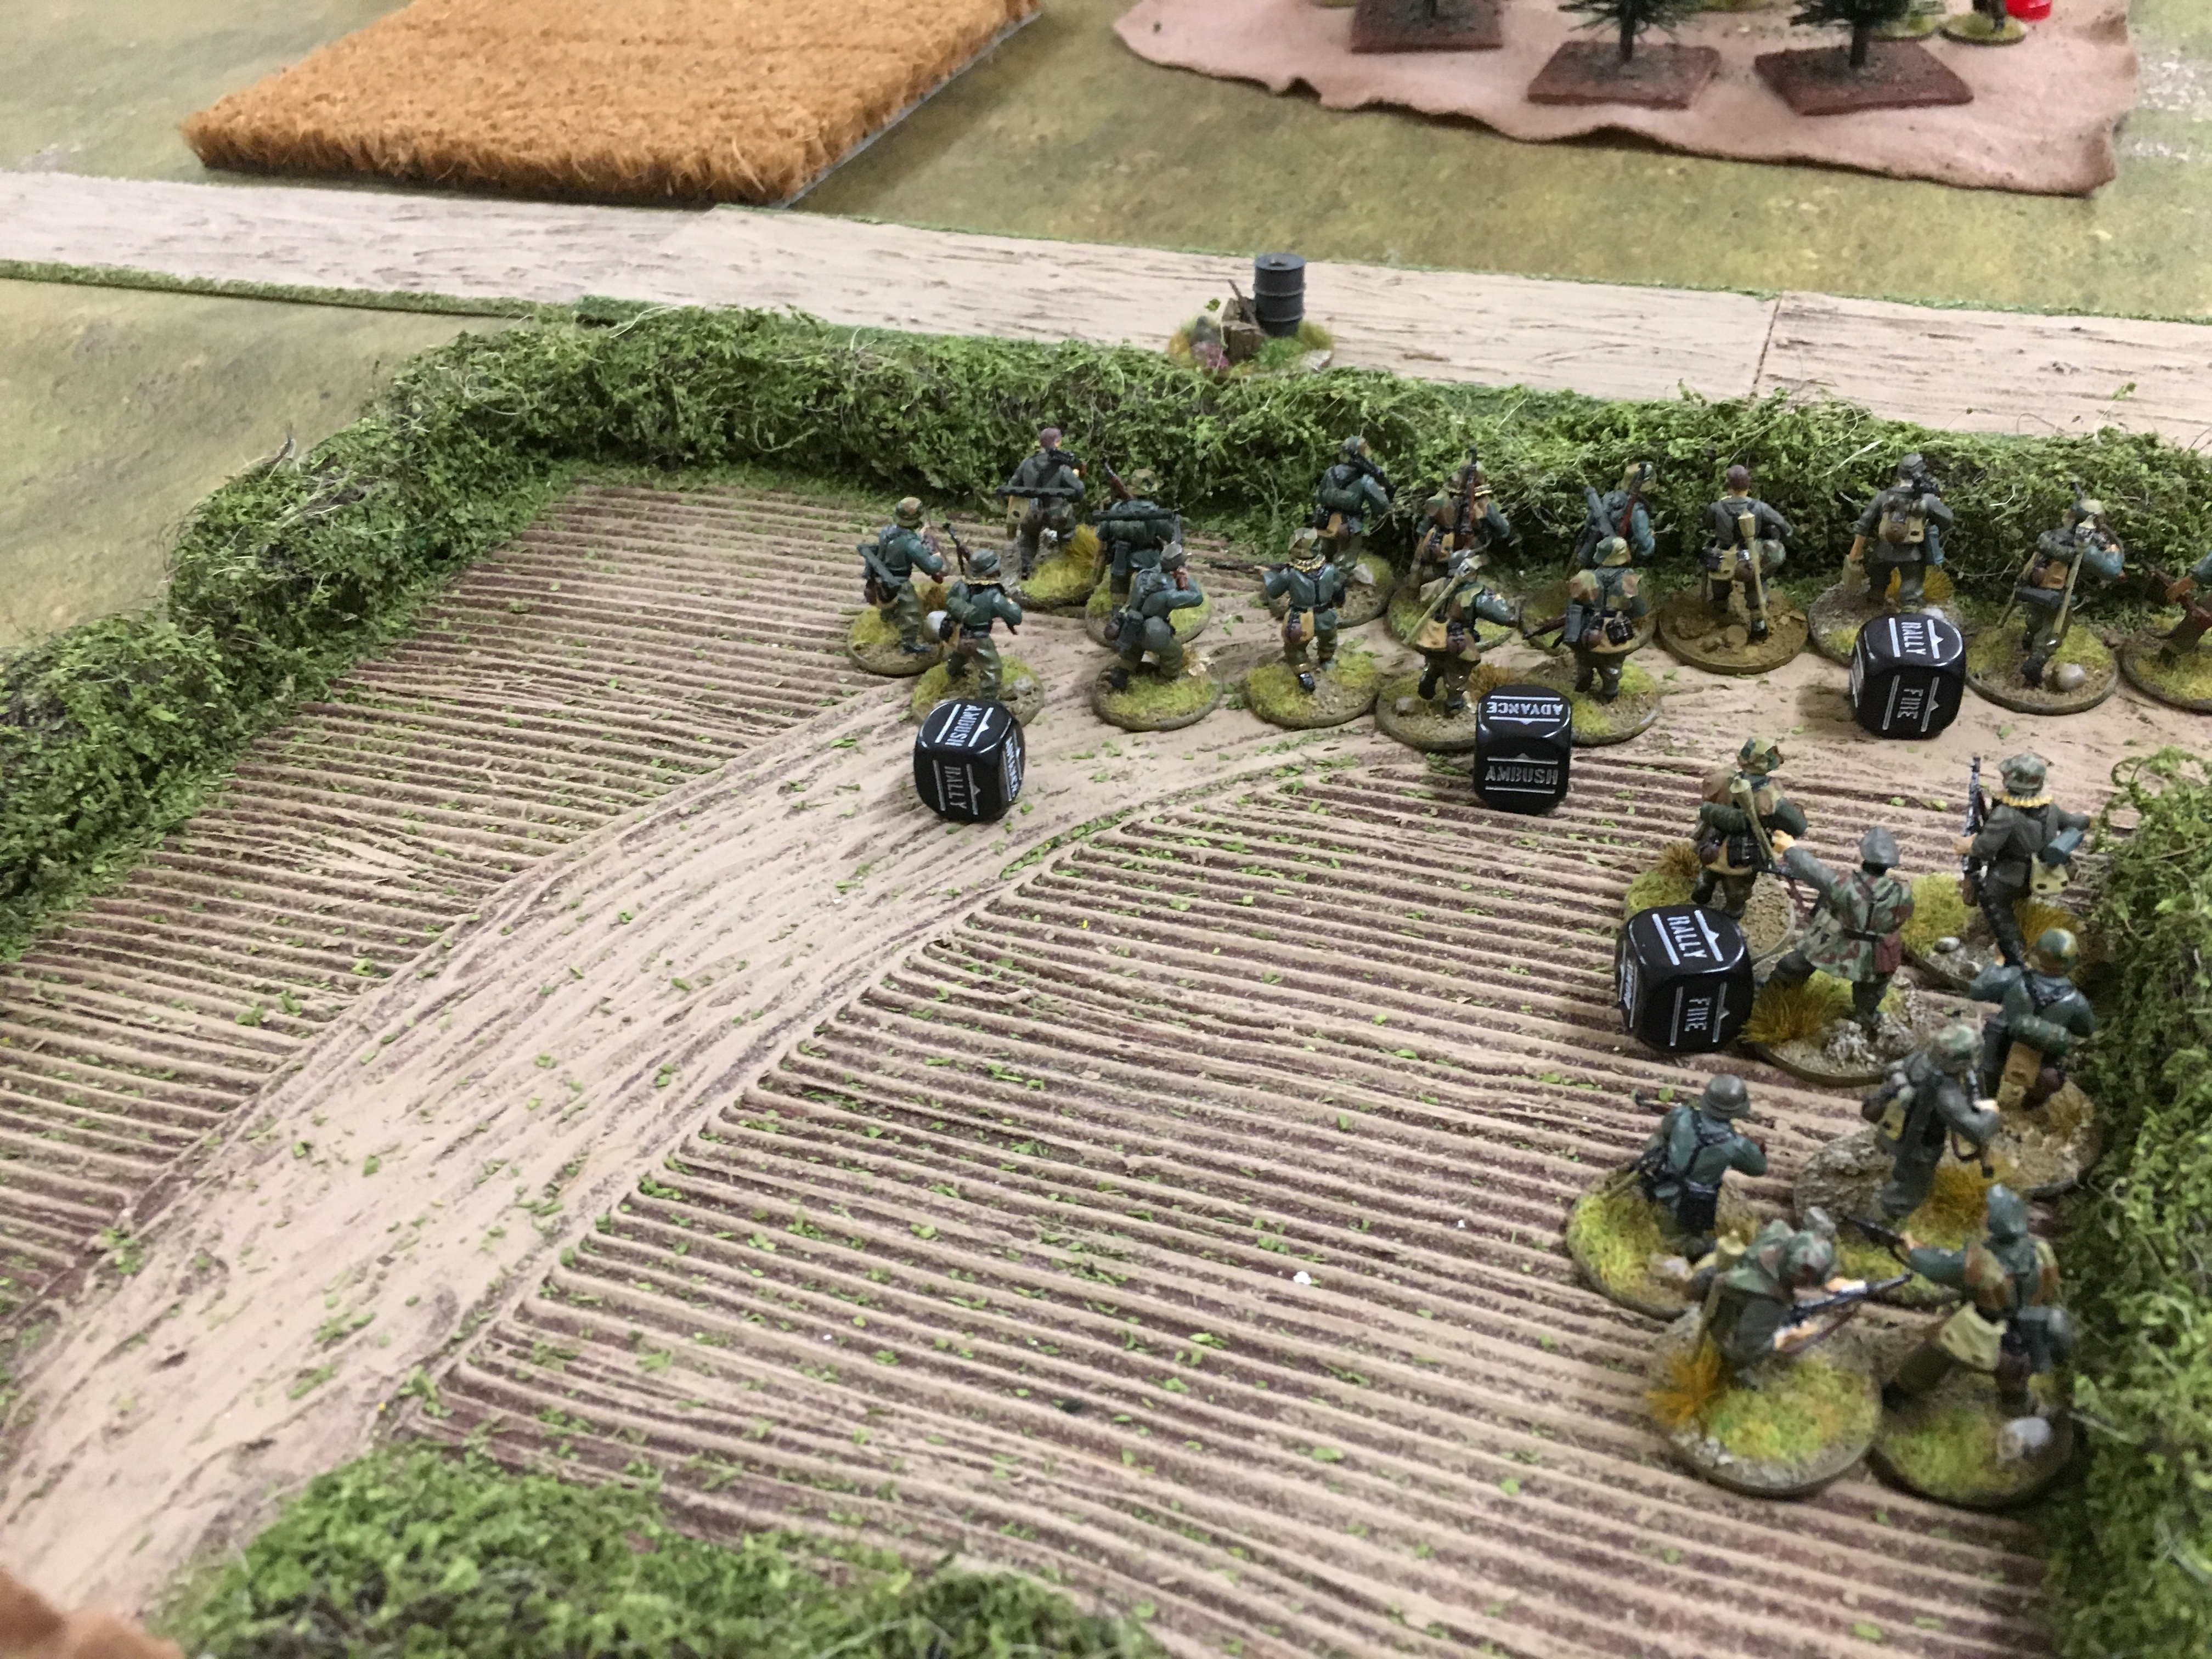 German grenadier's versus Nellyforce in a fierce infantry engagement